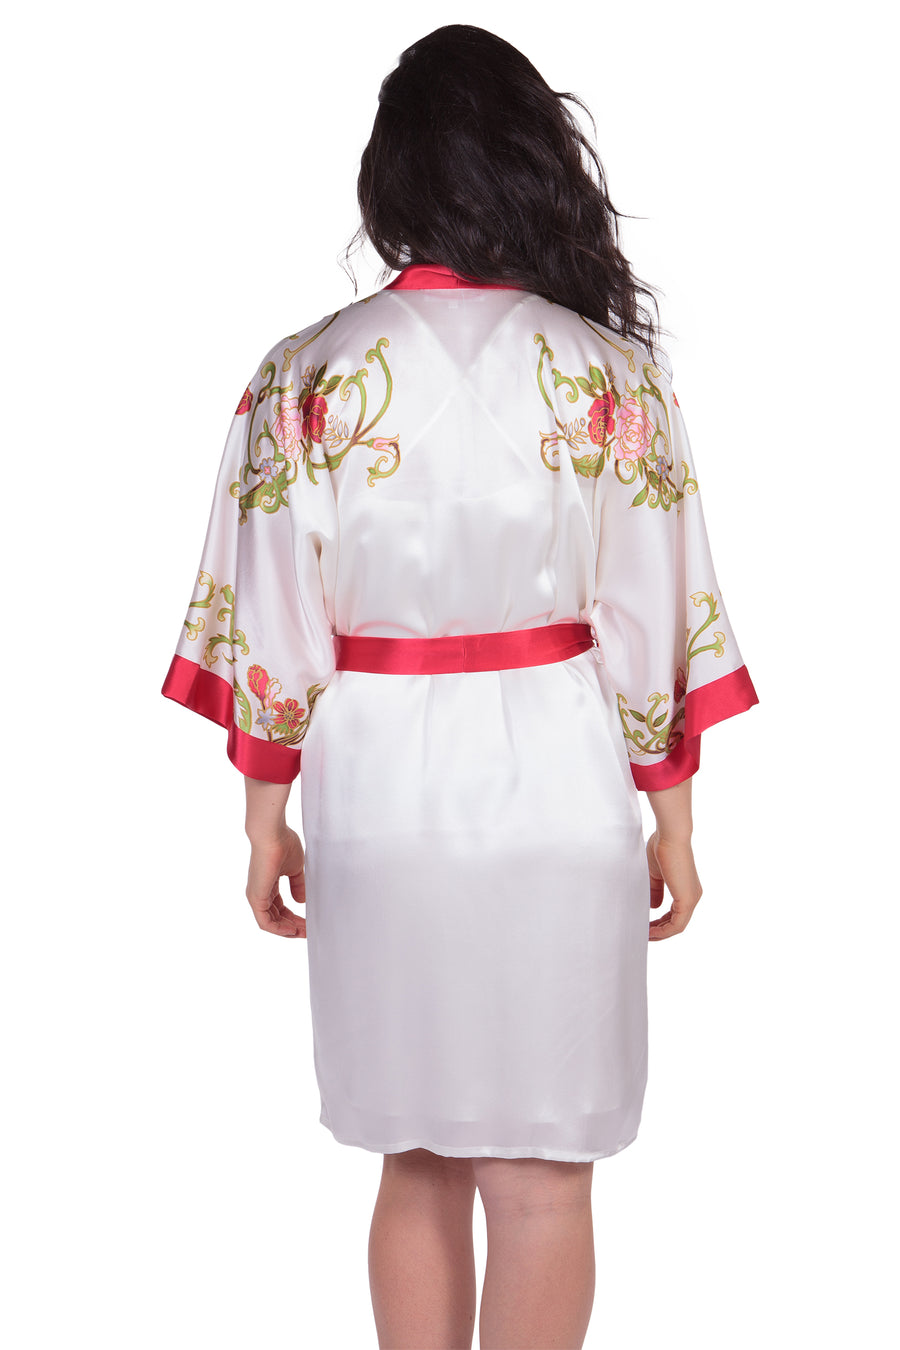 Rose Bouquet - Women's Hand Painted Robe - TexereSilk